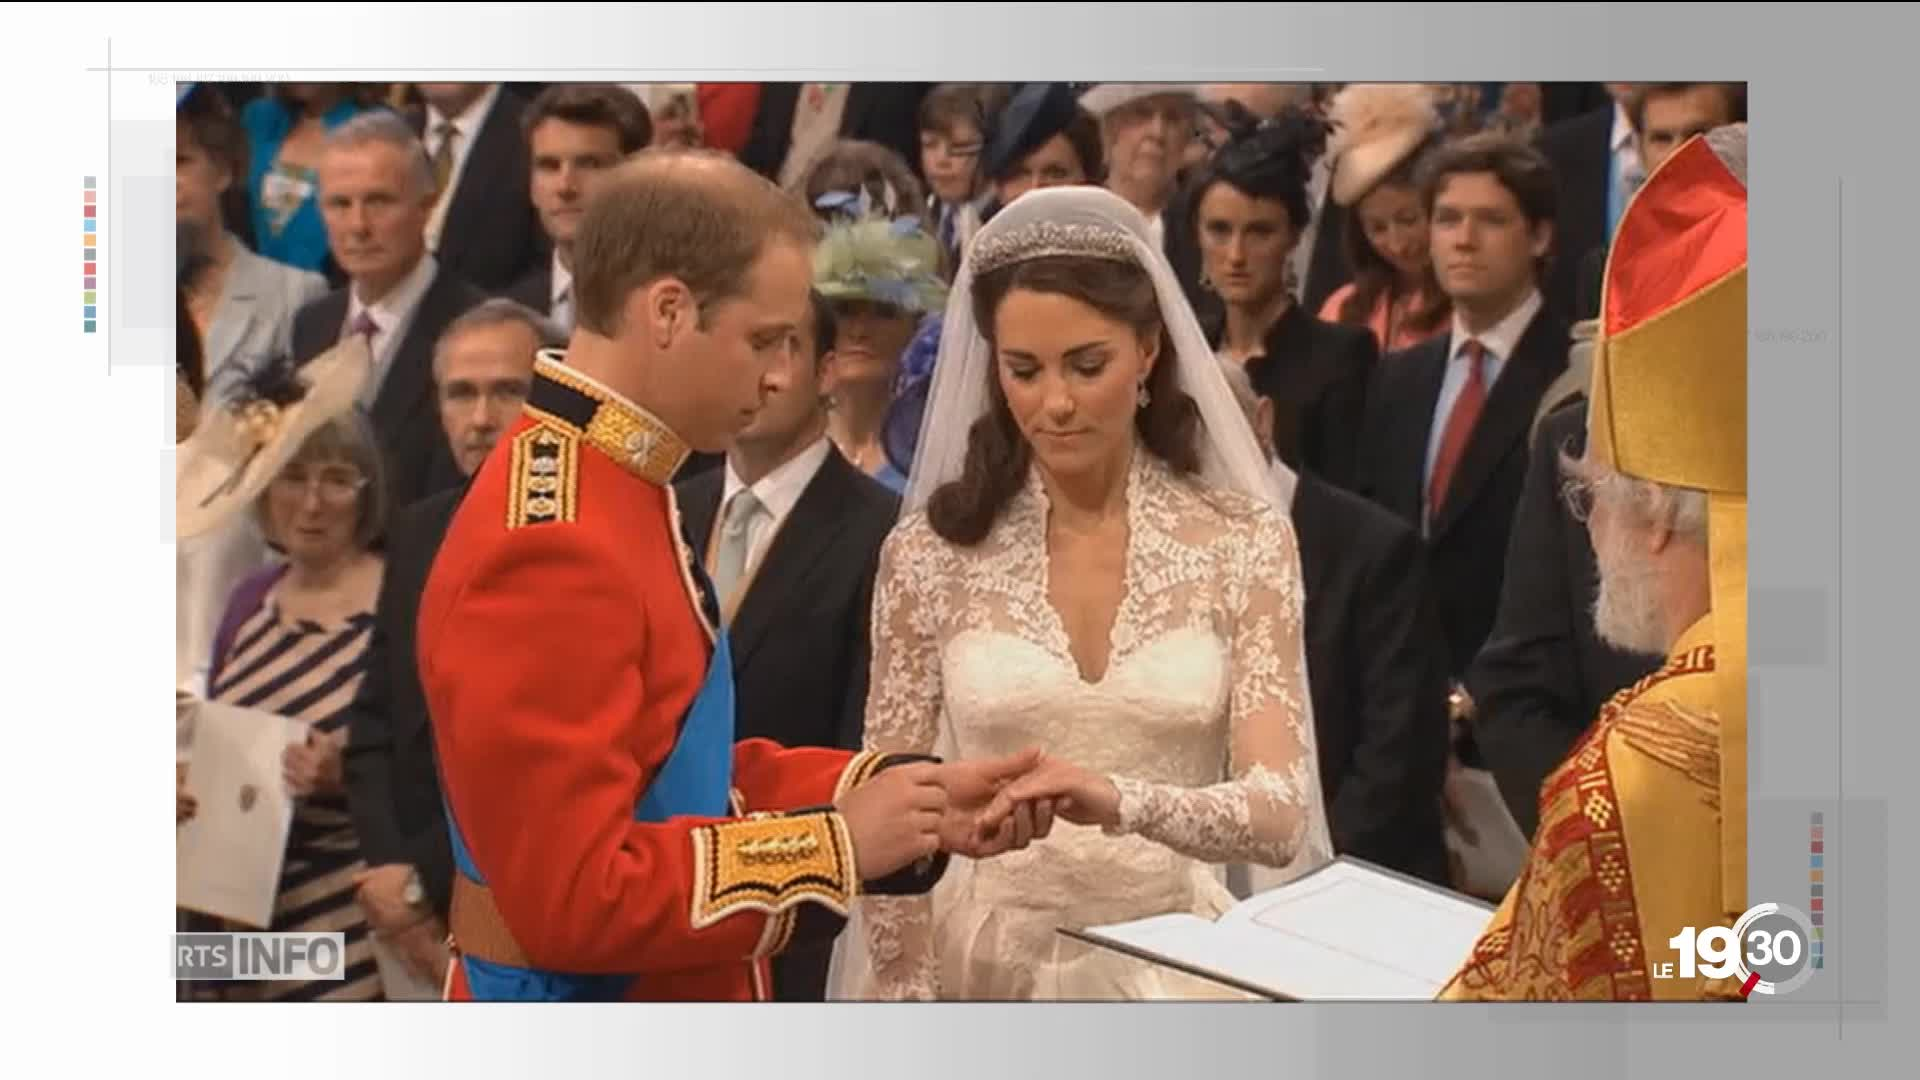 Elizabeth, Charles, William Harry, 4 mariages, 4 robes, 4 histoires